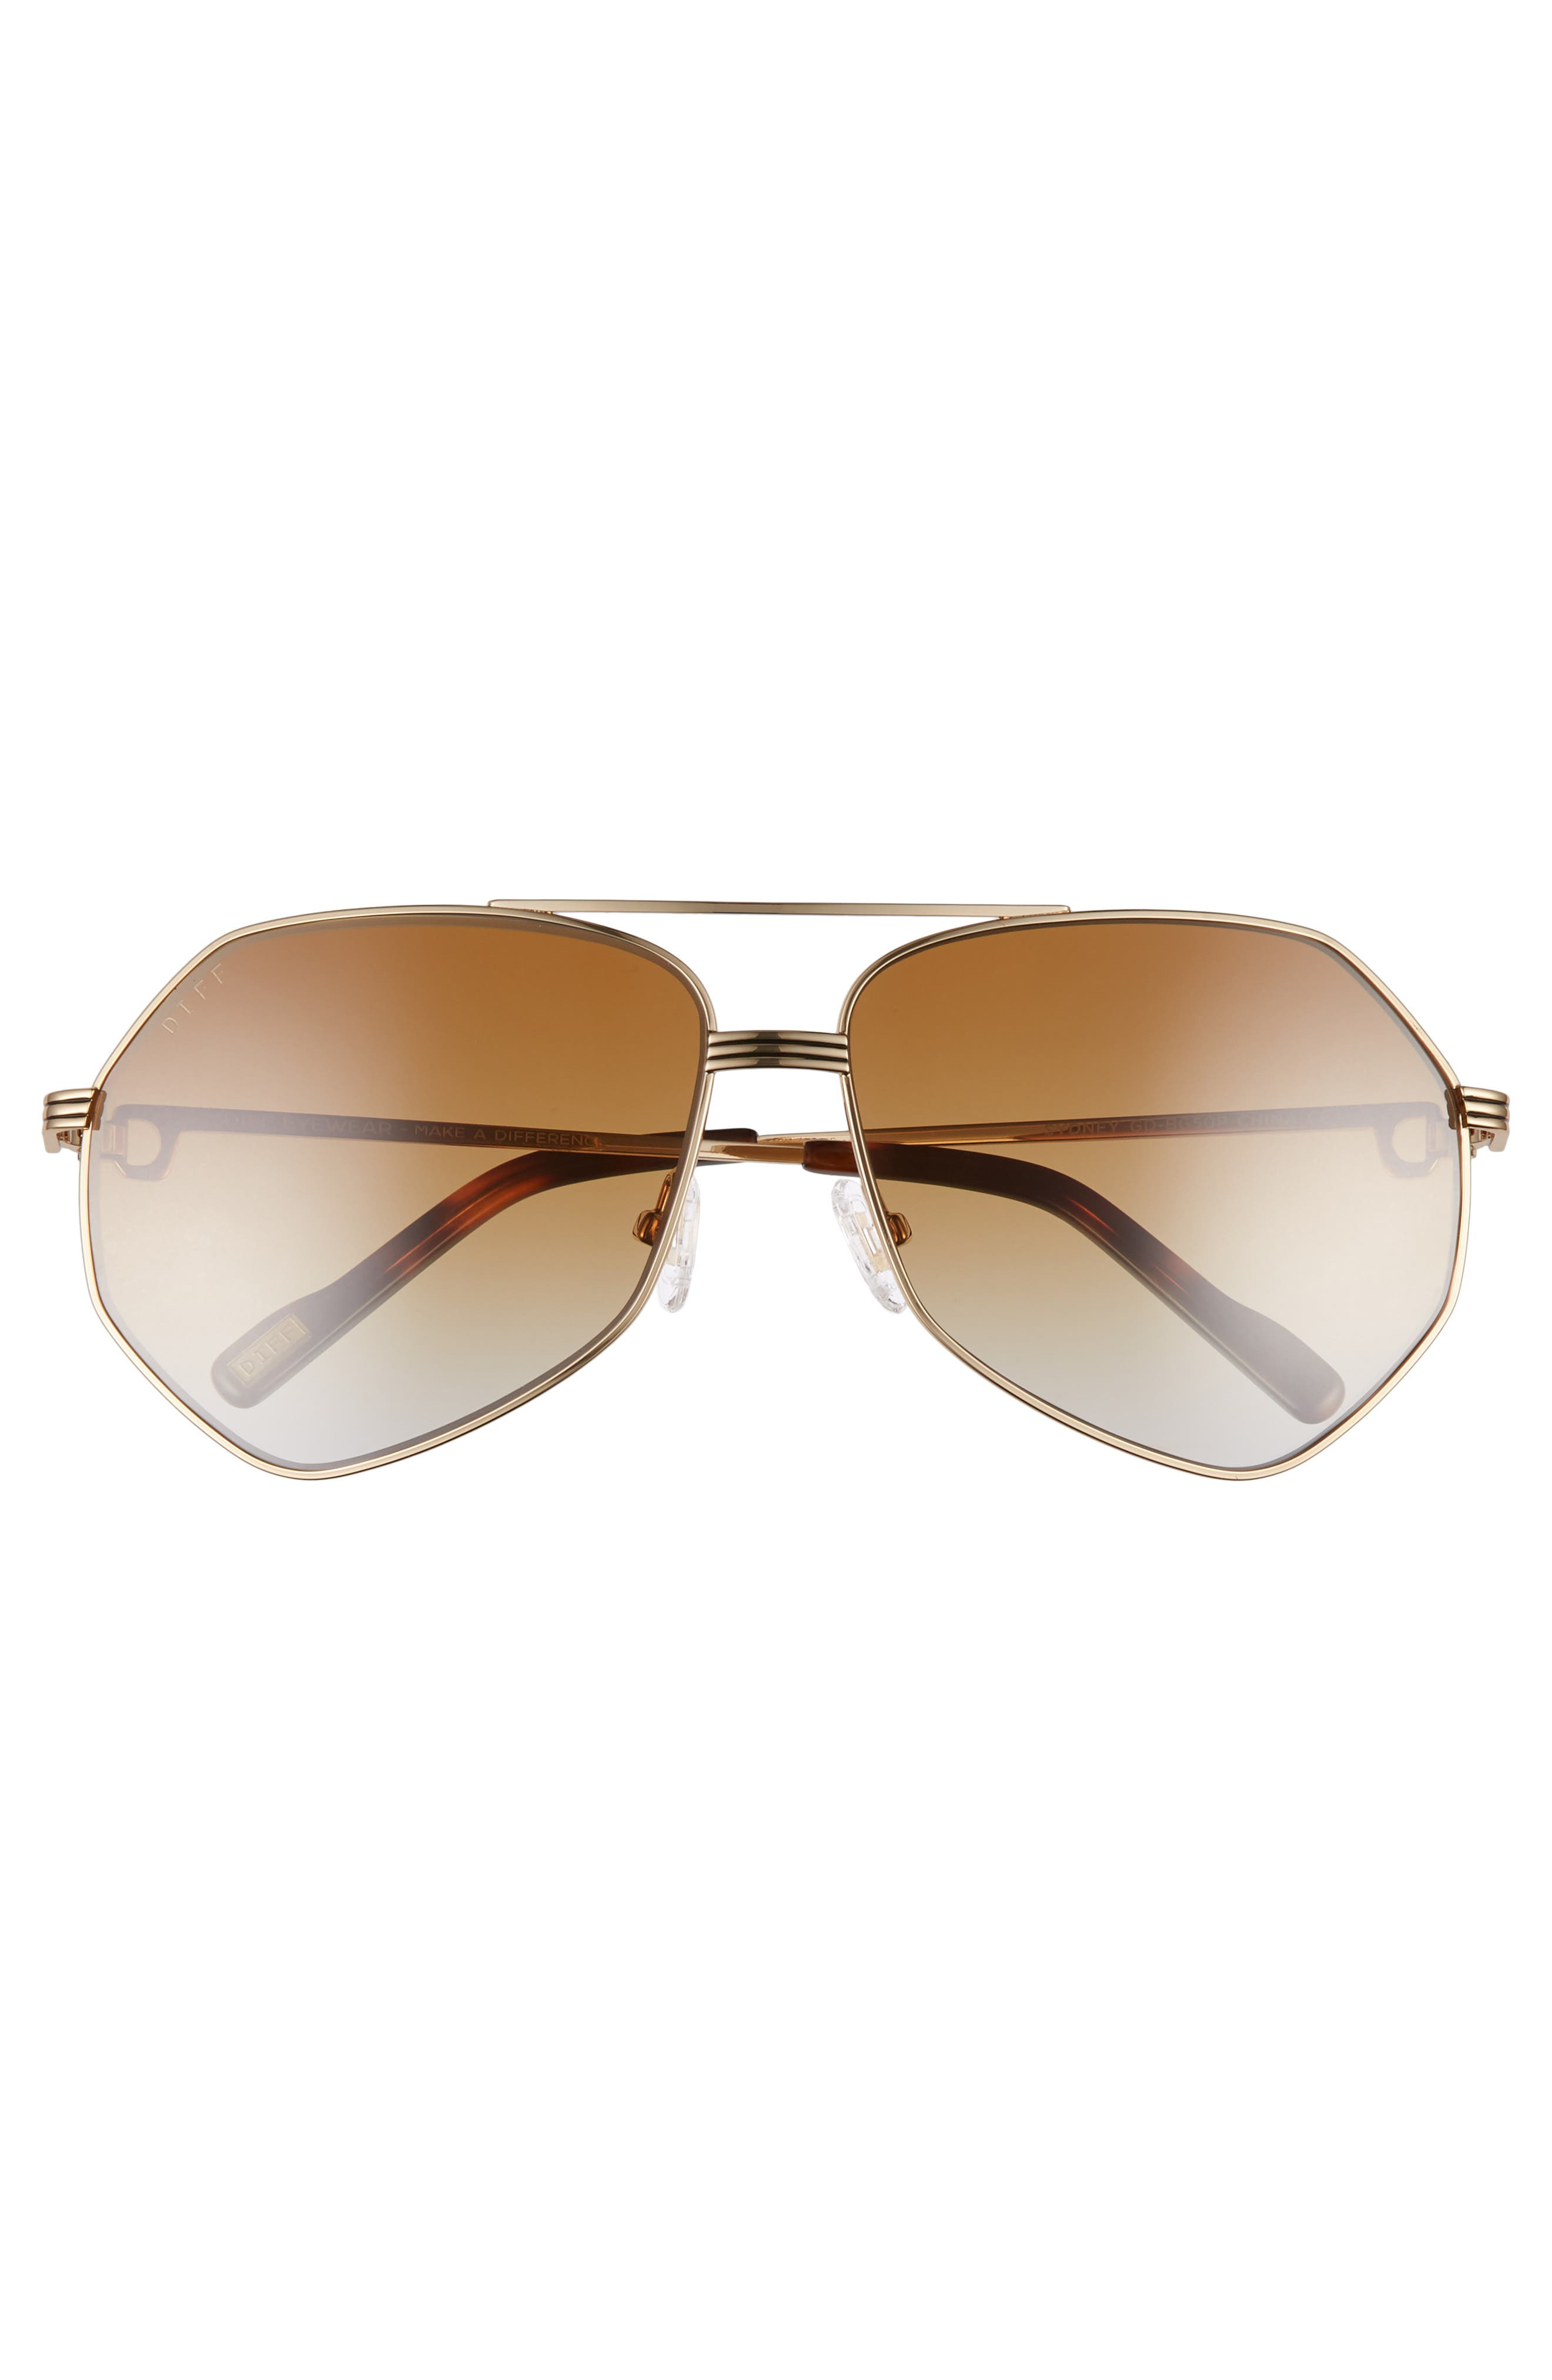 Sydney Sunglasses,                             Alternate thumbnail 3, color,                             GOLD/ BROWN